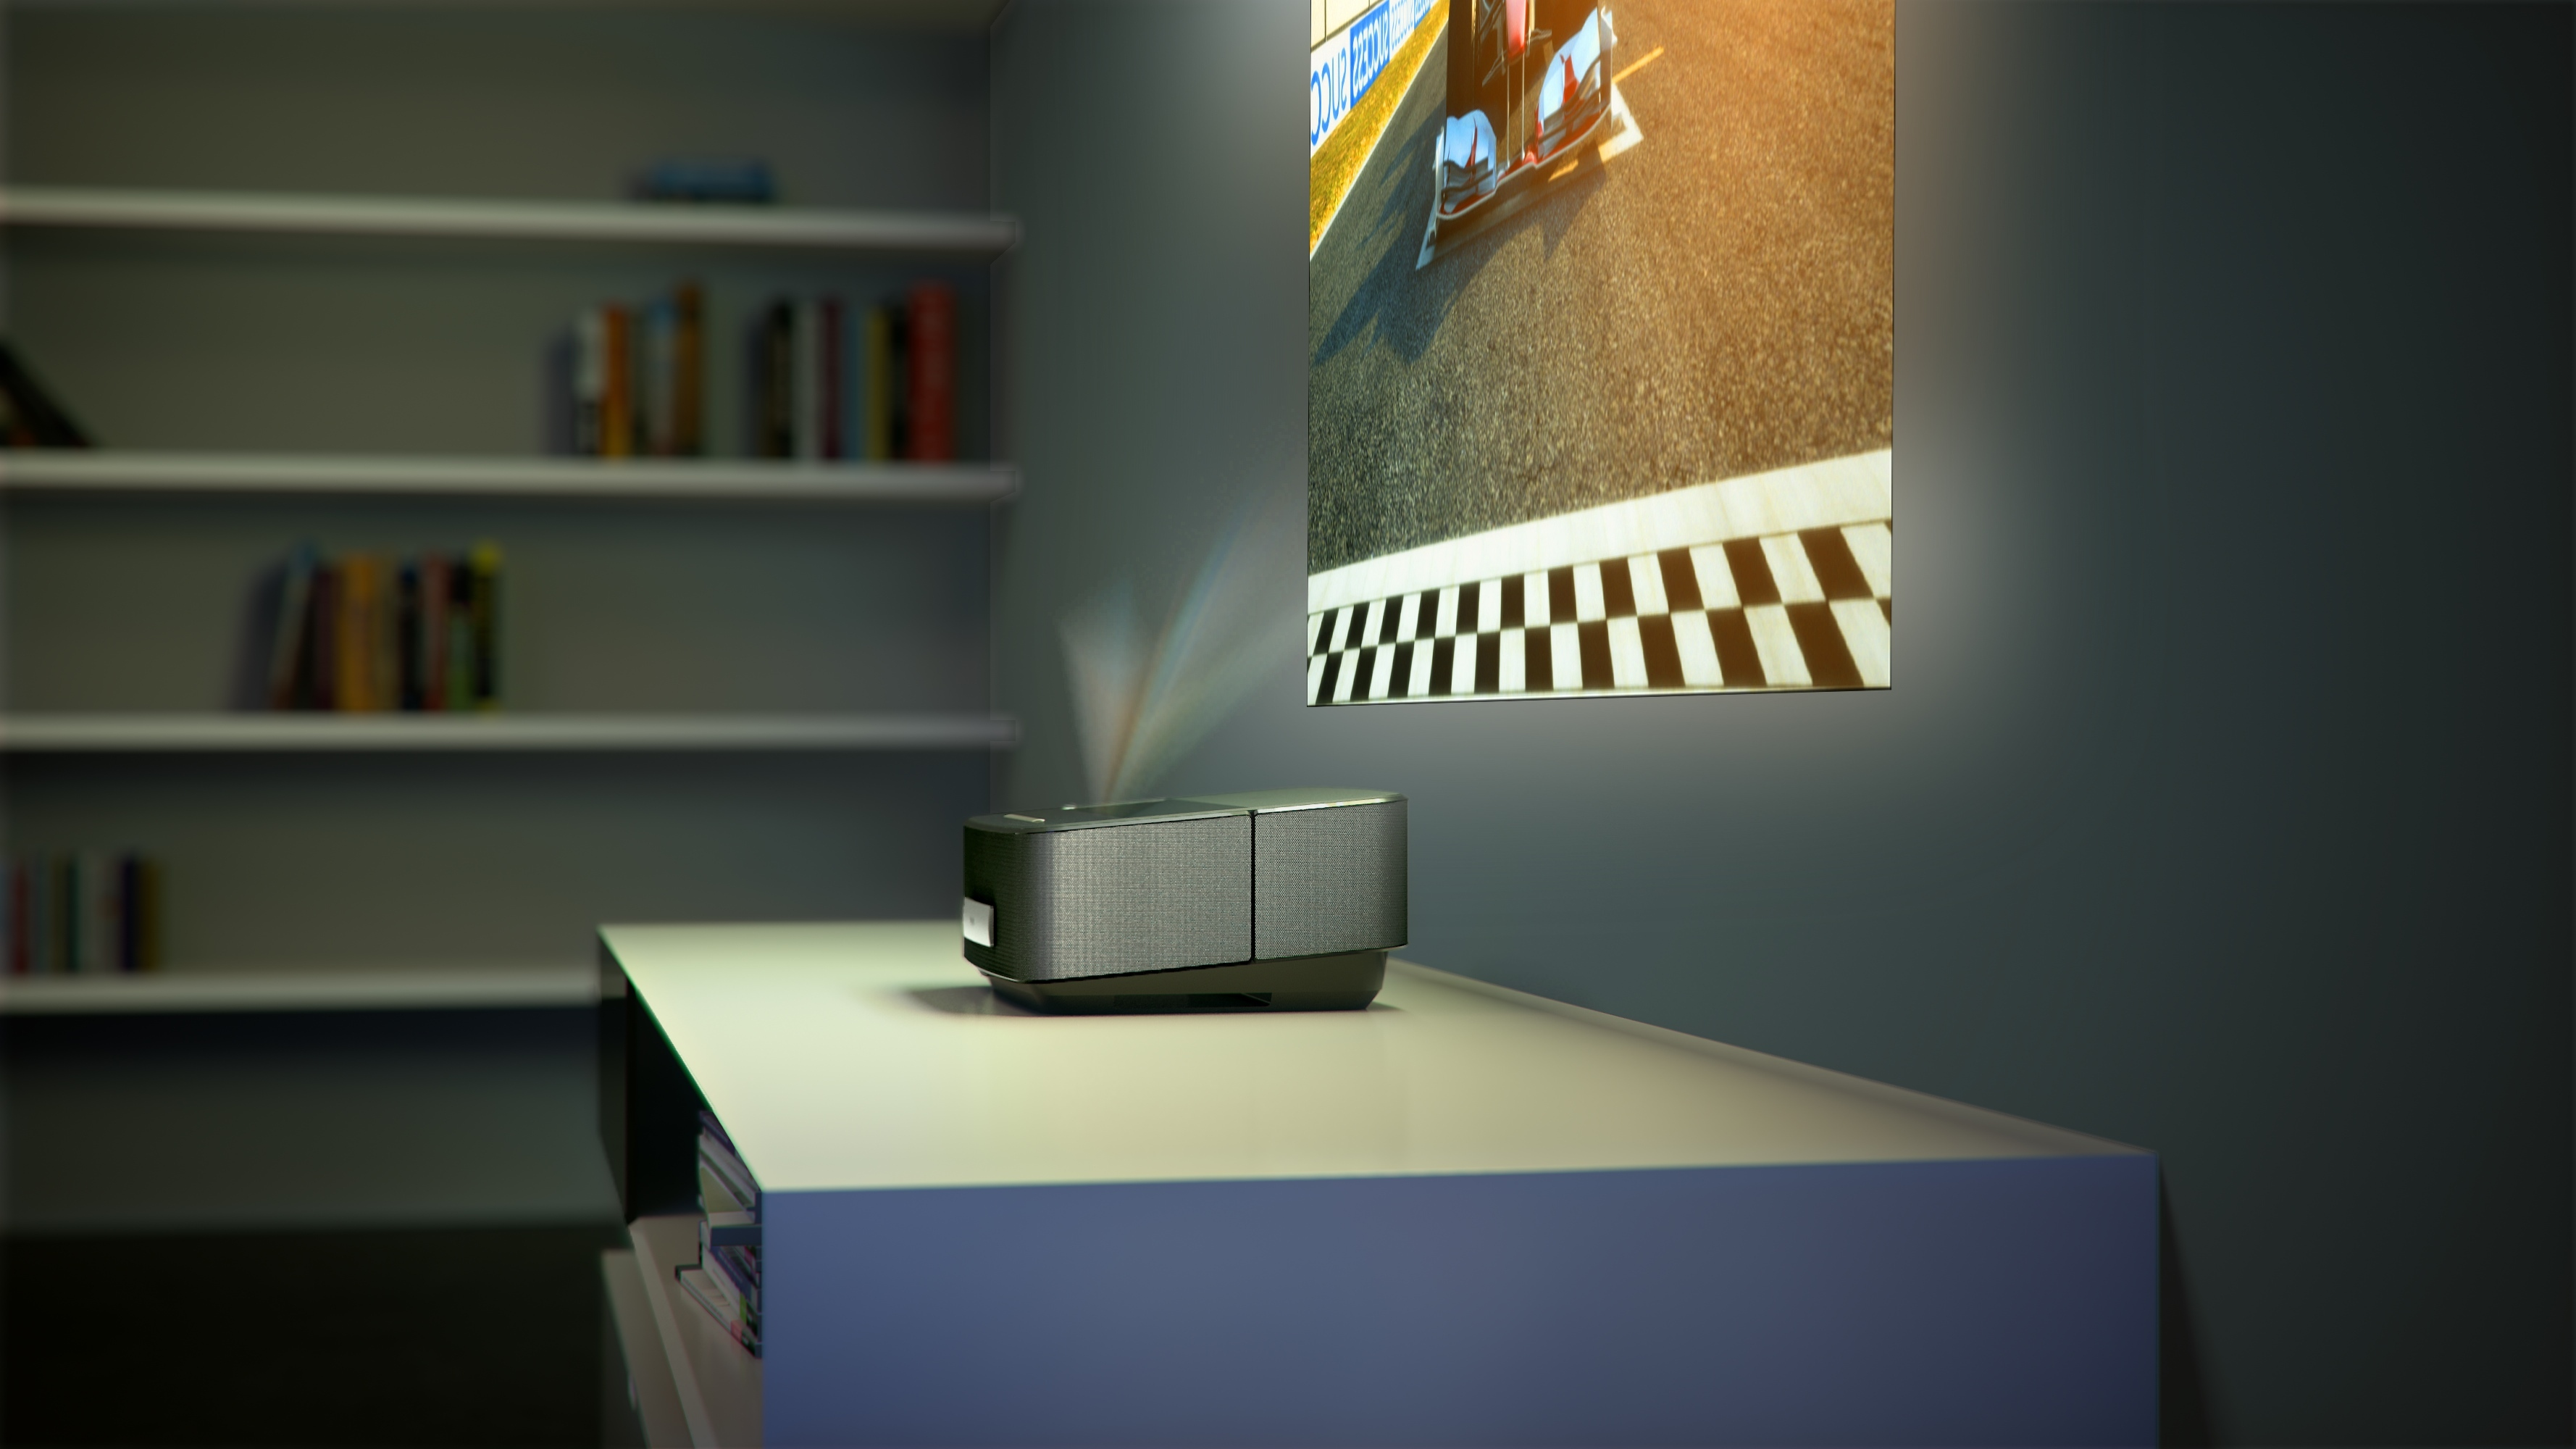 sony 4k ultra short throw projector preview cnet. Black Bedroom Furniture Sets. Home Design Ideas